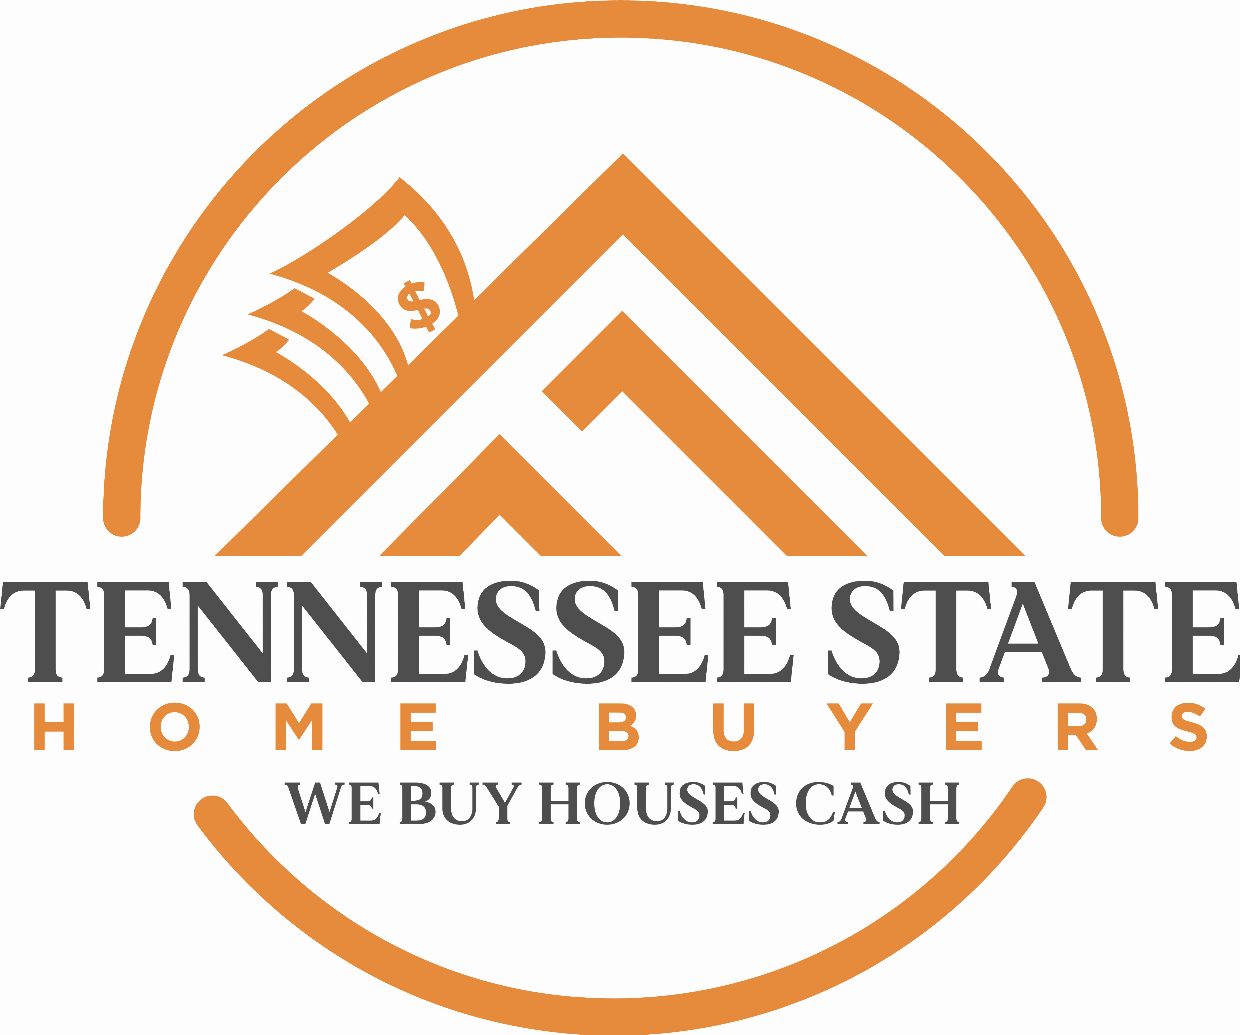 We Buy Houses In Tennessee logo